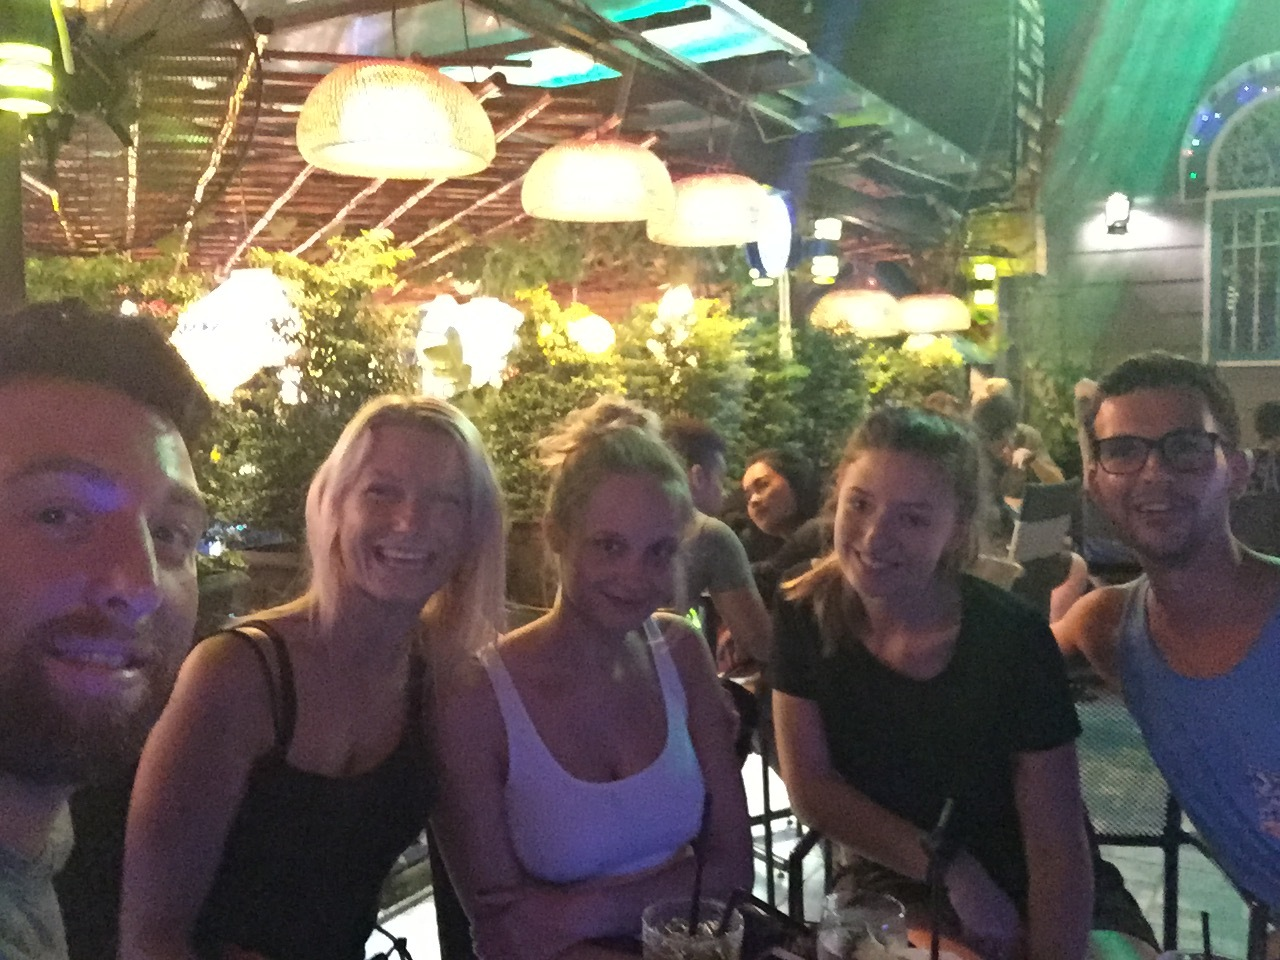 Refugees from Backpacker Street, grabbing a drink at a rooftop bar.